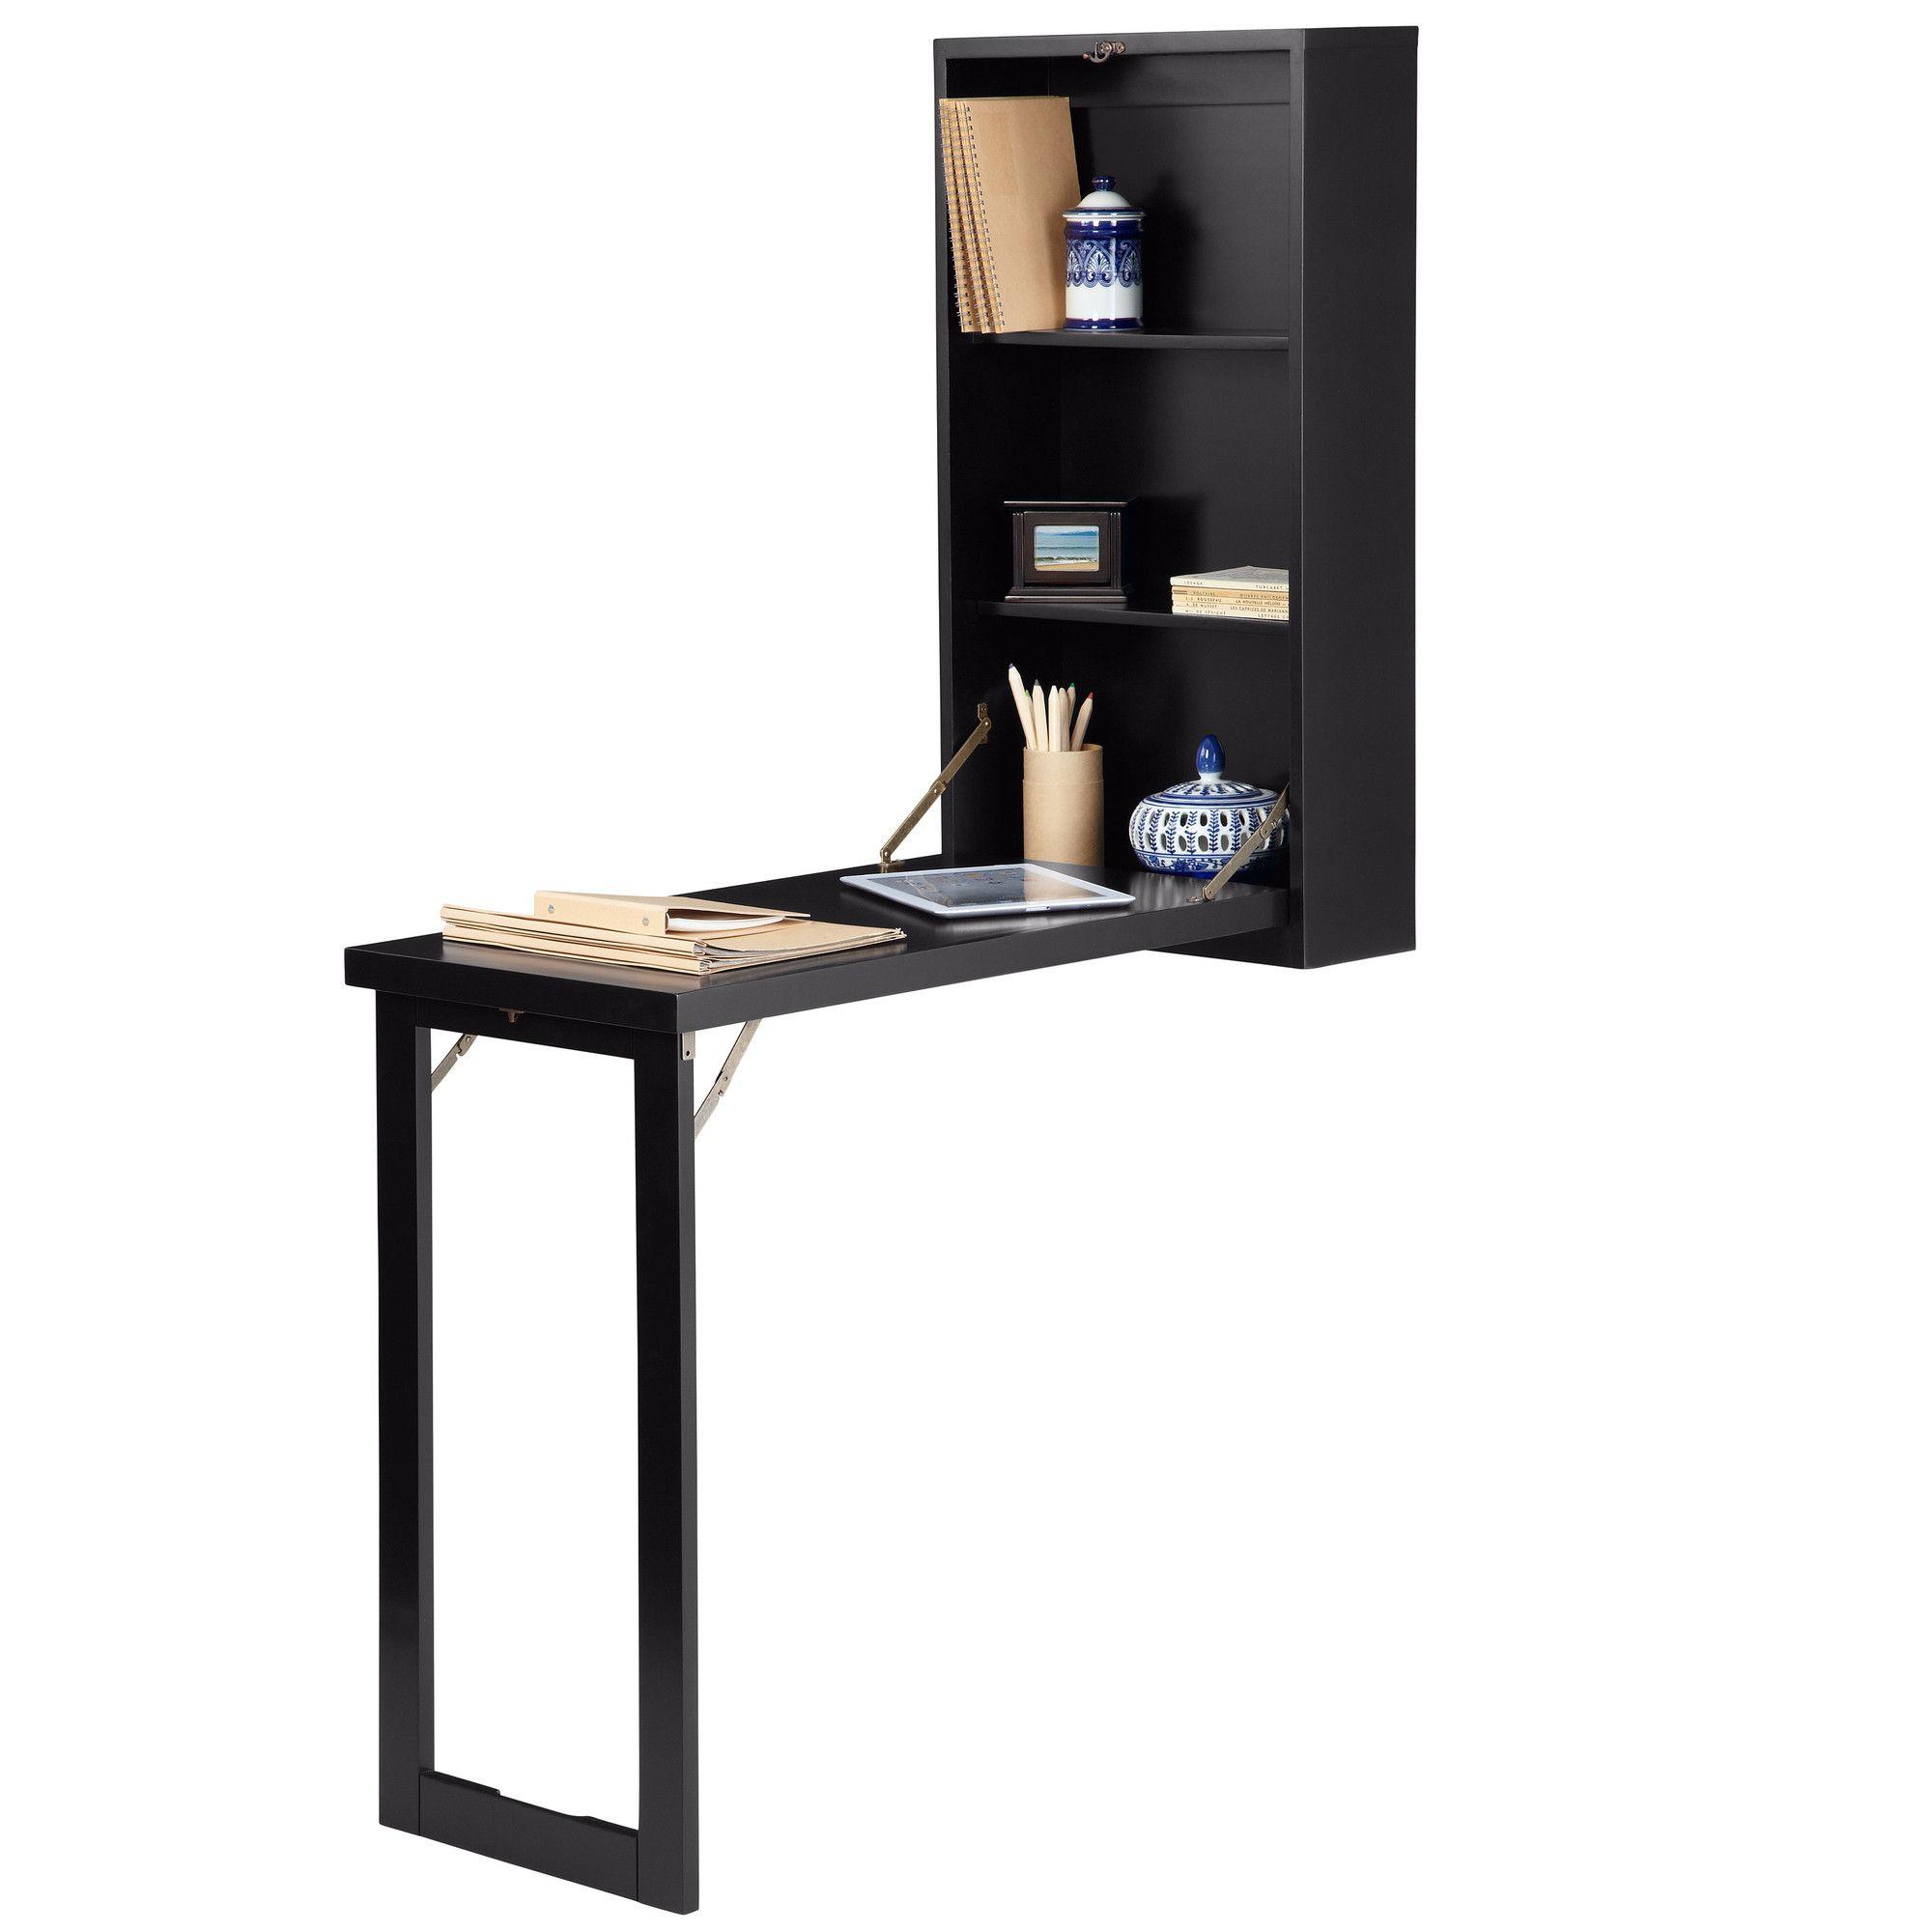 A second desk option, it folds down when needed. When